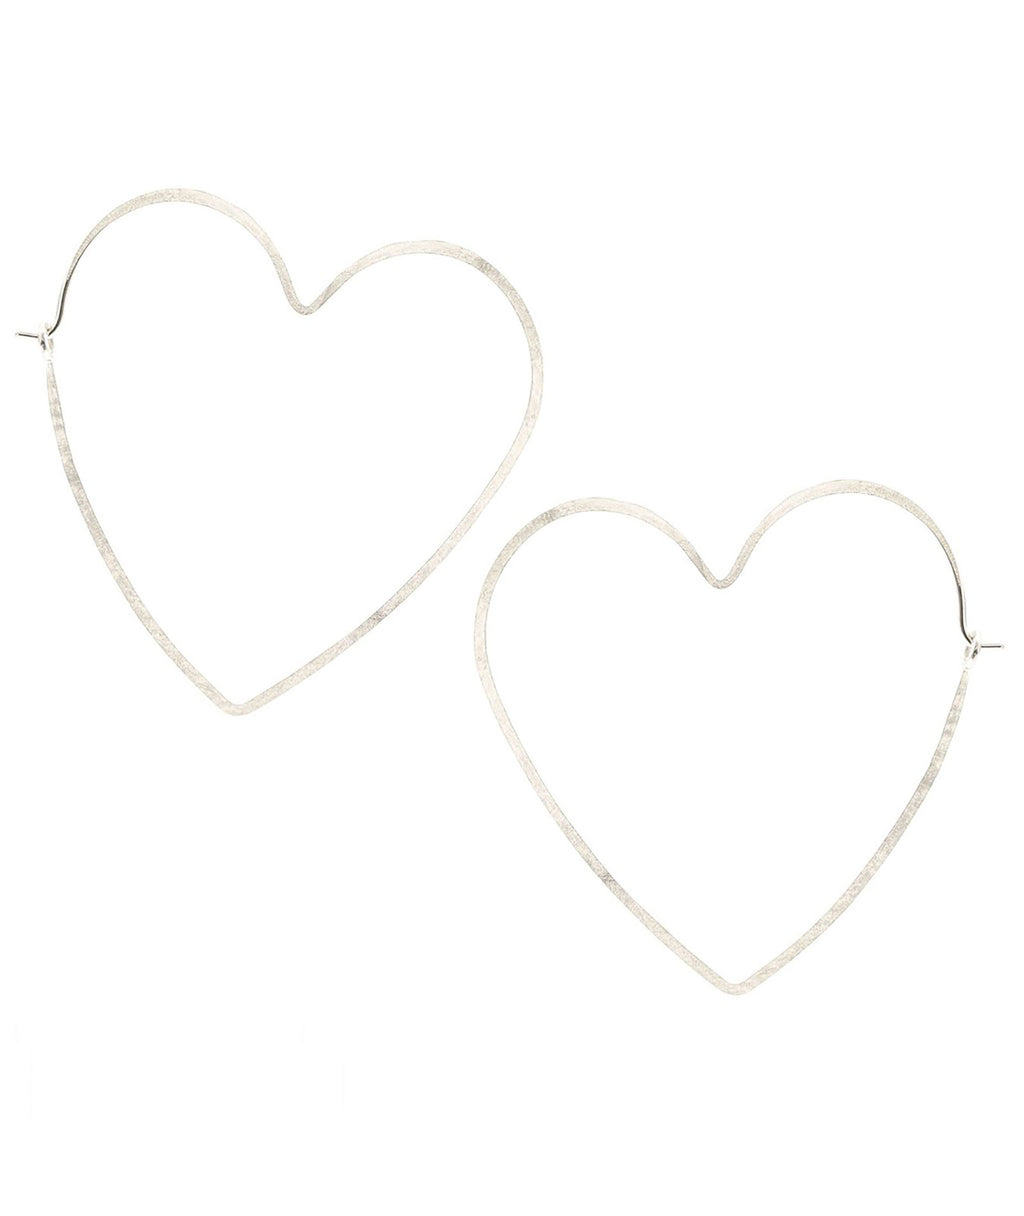 Kris Nations Earrings Hammered Hoop Heart Silver